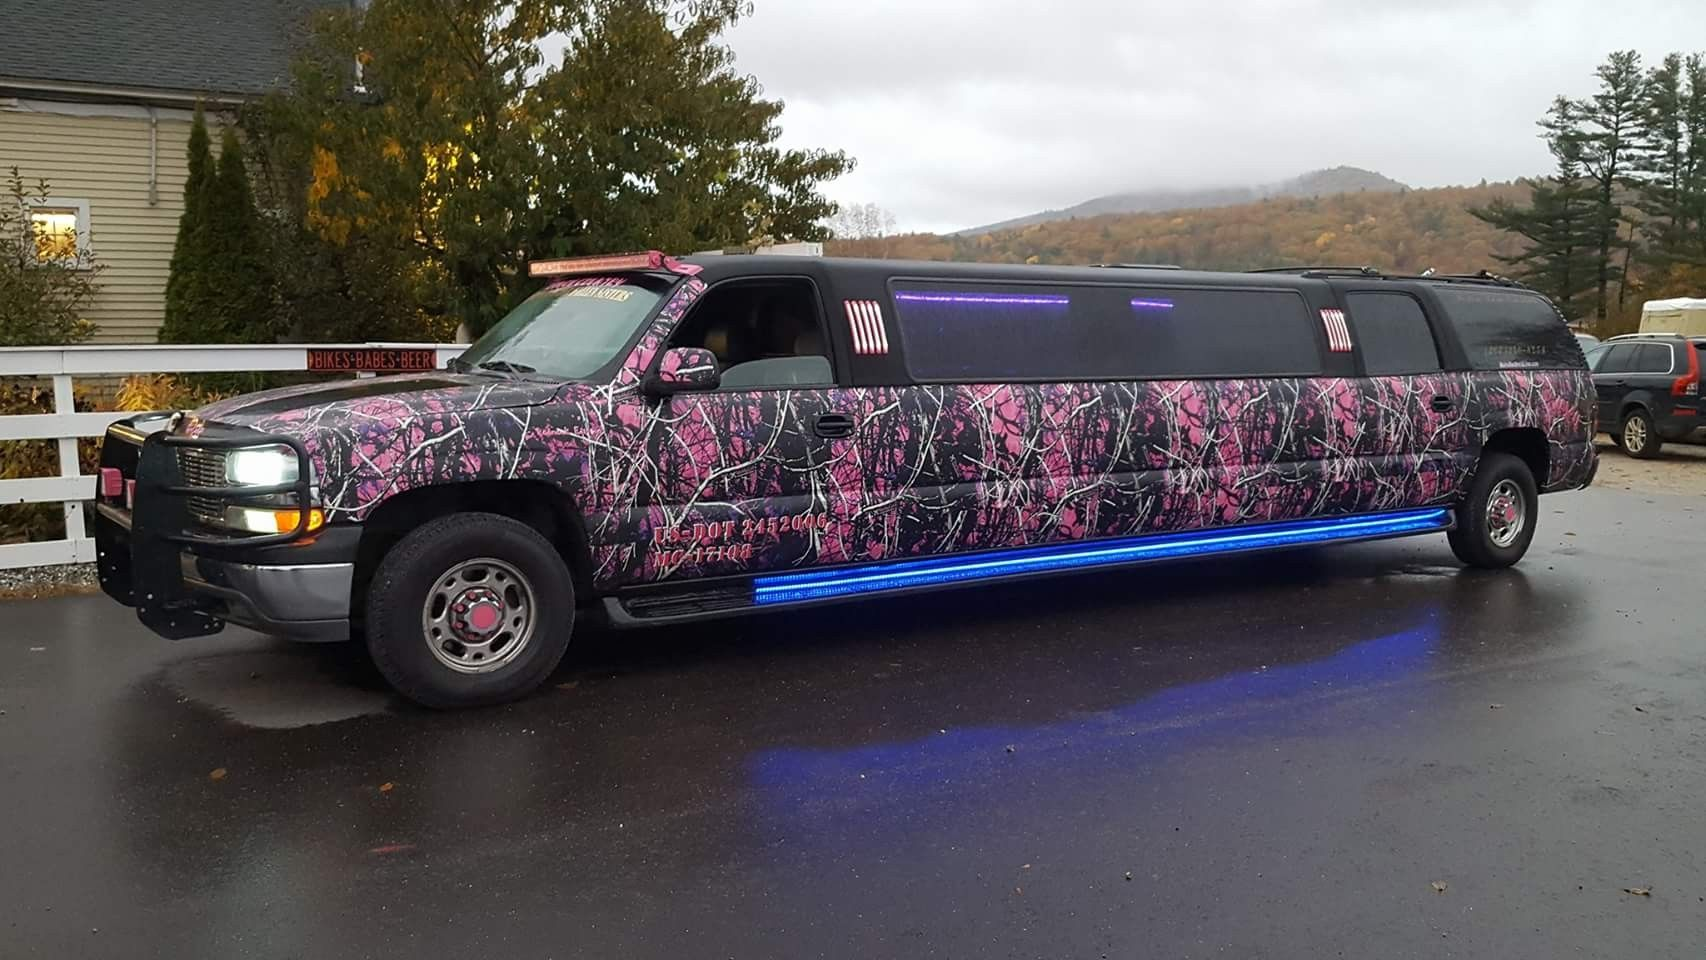 All Shined Up And Ready Muddy Girl Limo Wrapped In Camo Vinyl Www Camomyride Com Muddy Girl Vinyl Limo